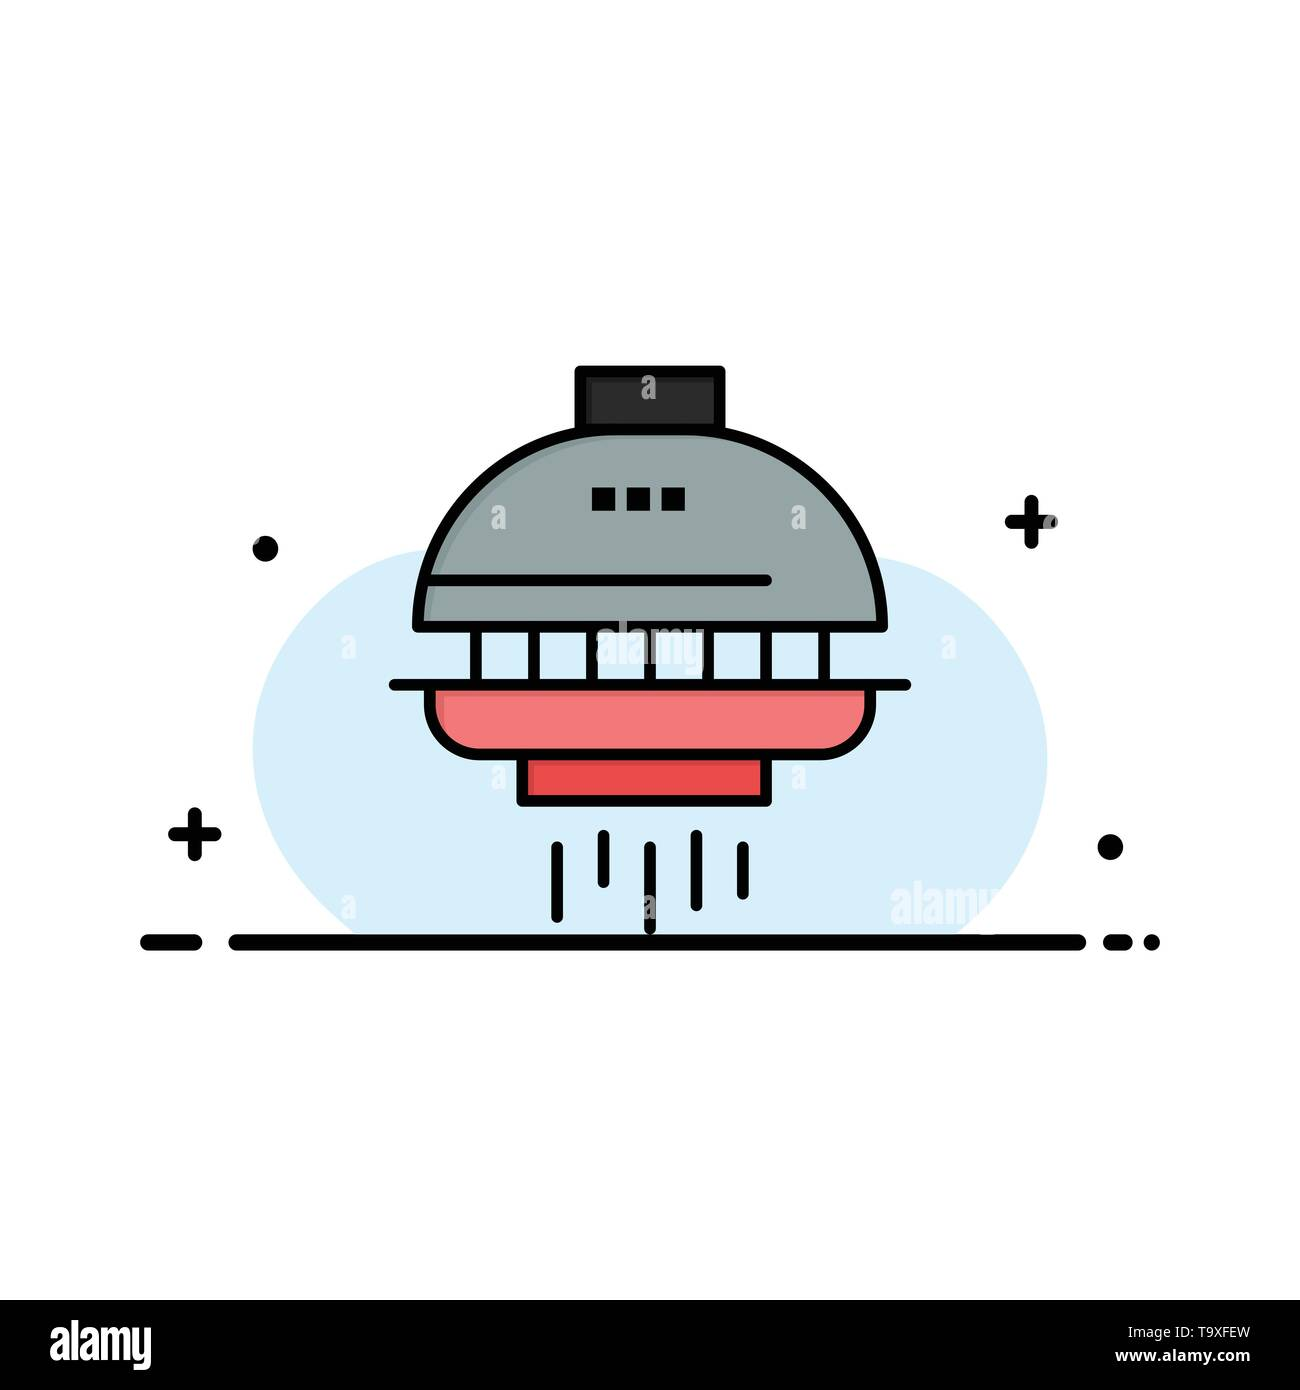 Space, shuttle, spacecraft, ufo business flat line filled icon.